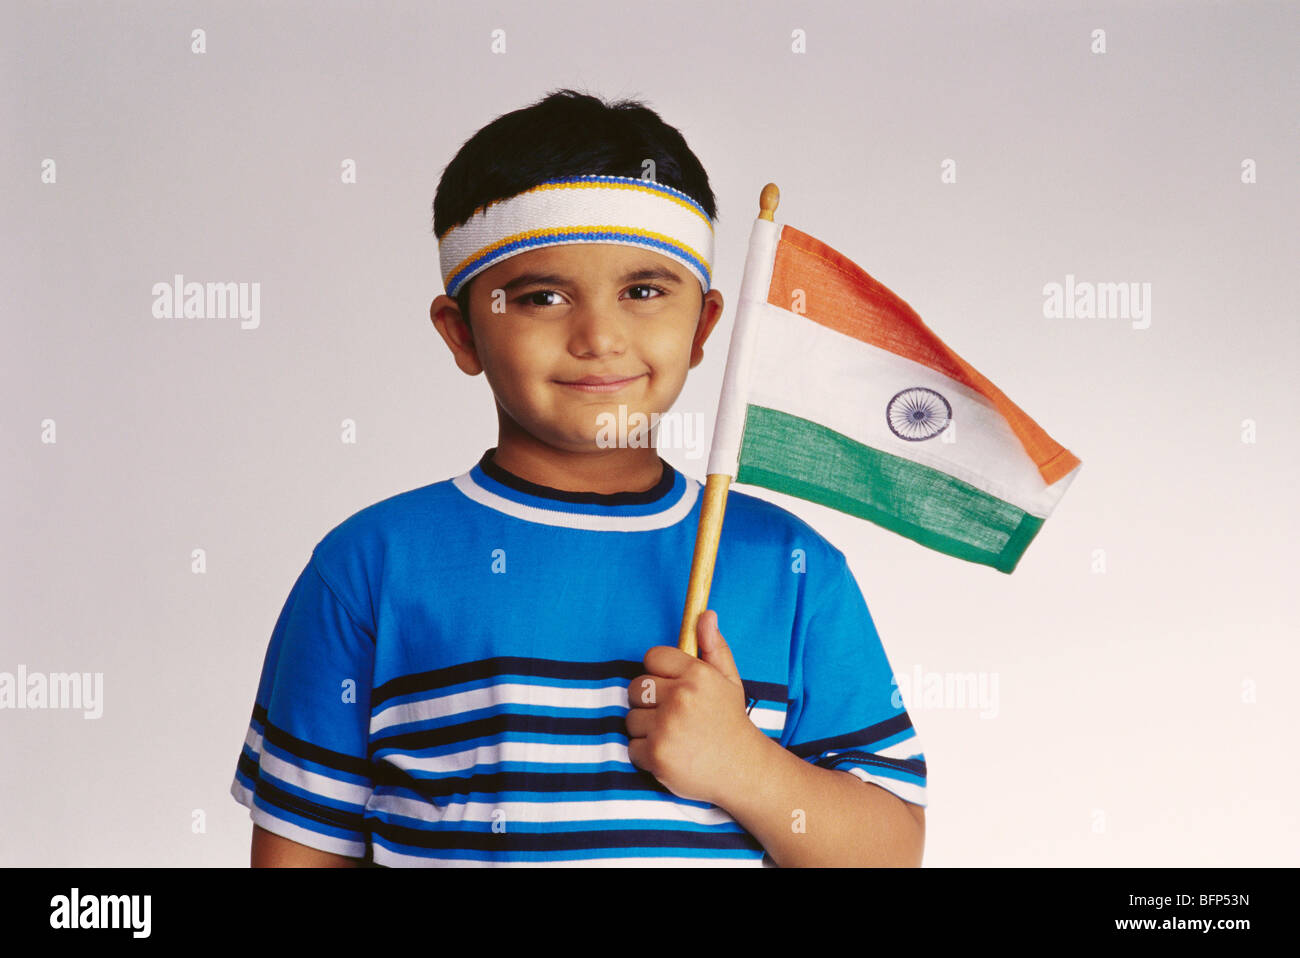 f5e08fd1a VDA 63751 : Boy dressed as hockey player holding flag of India in hand MR#